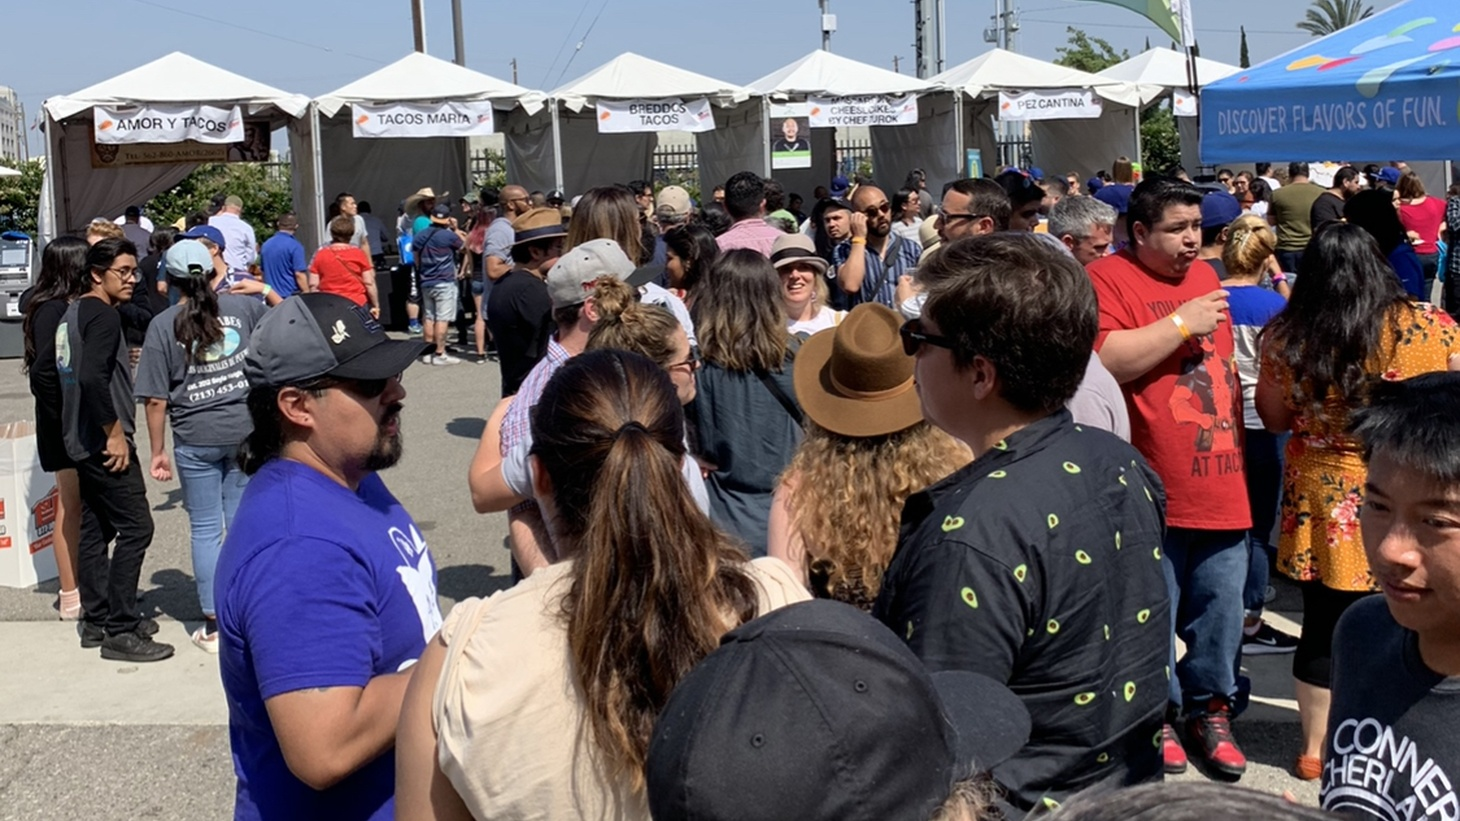 Food festivals are soaring in popularity. But are they good for chefs?